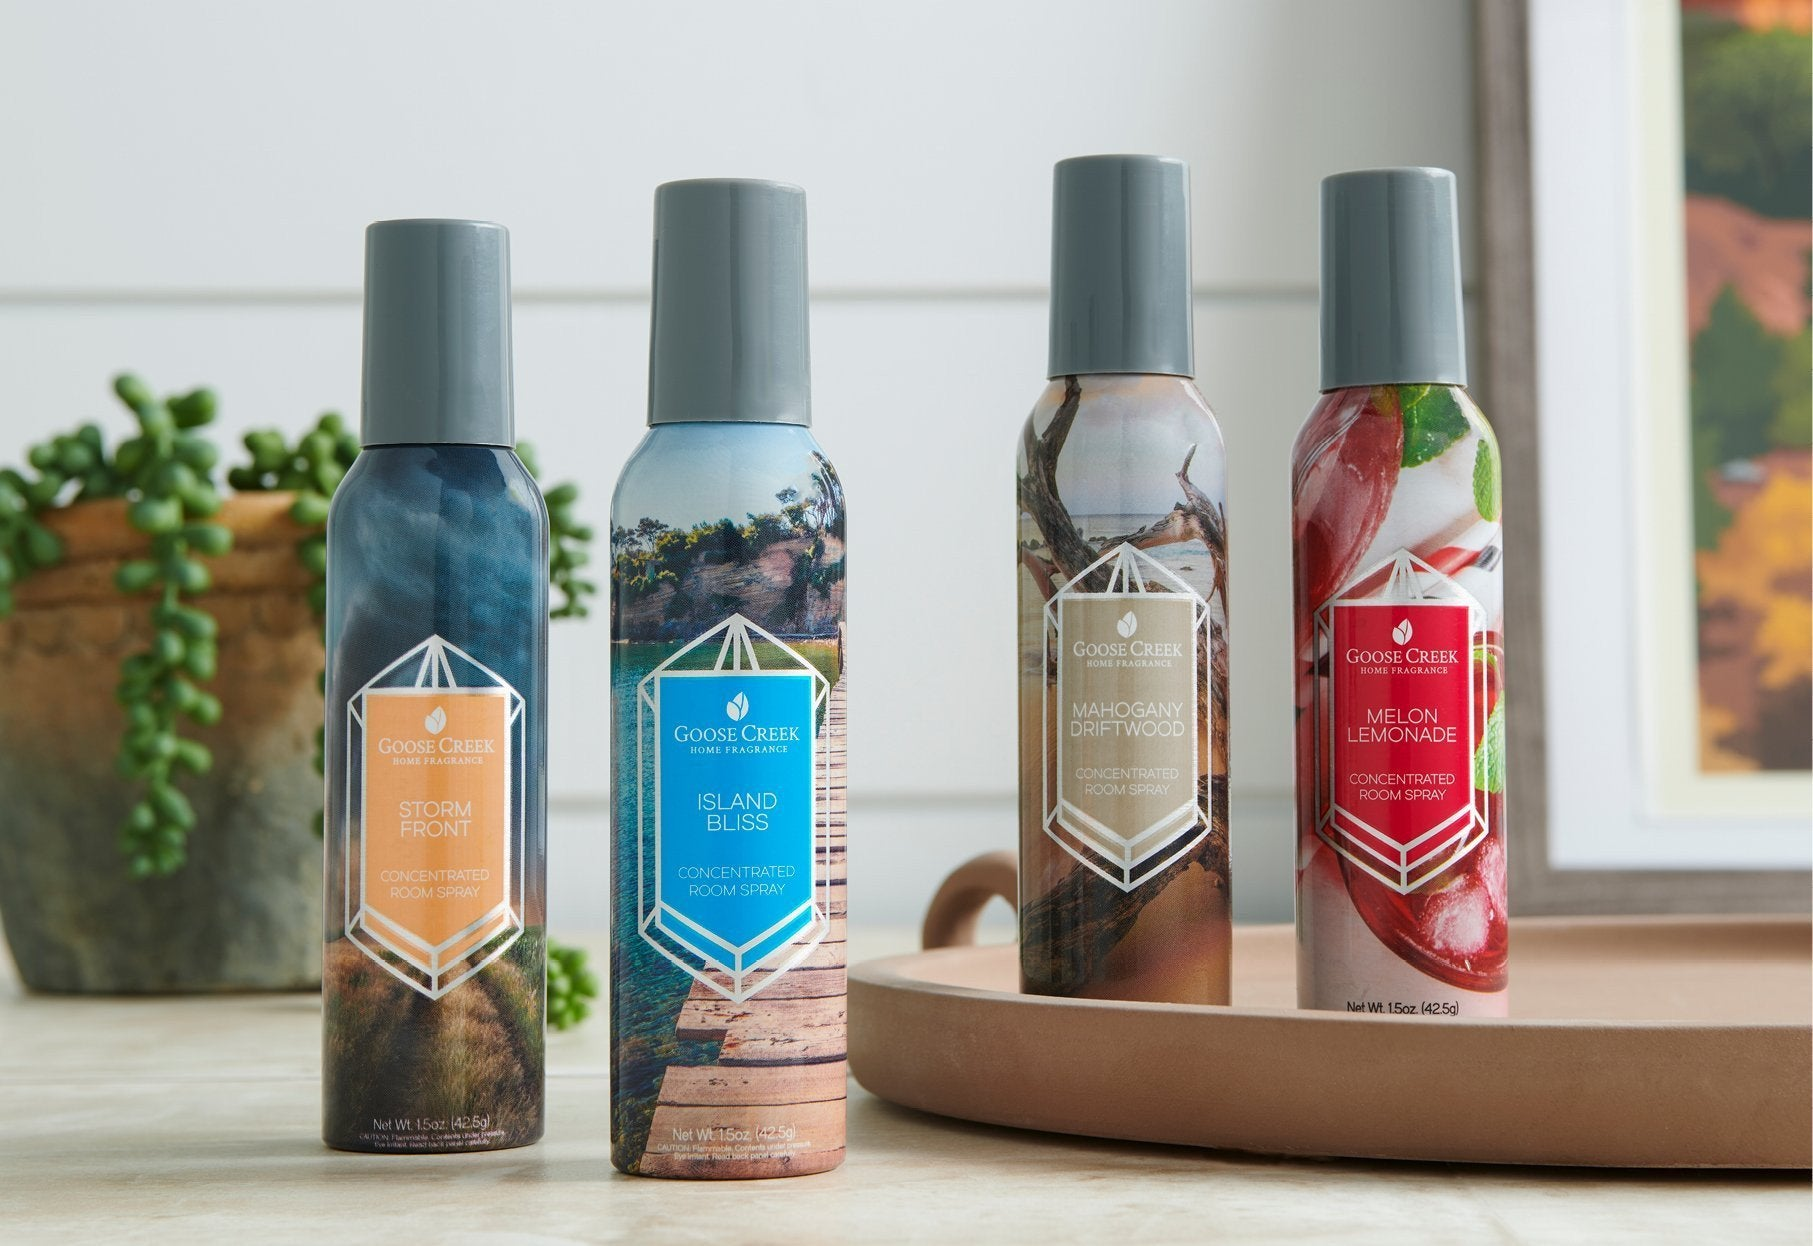 Enjoy A Refreshing And Uplifting Burst Of Fabulous Fragrance At Any Time With These Long Lasting Room Sprays From Goose Creek Goose Creek Candle Europe